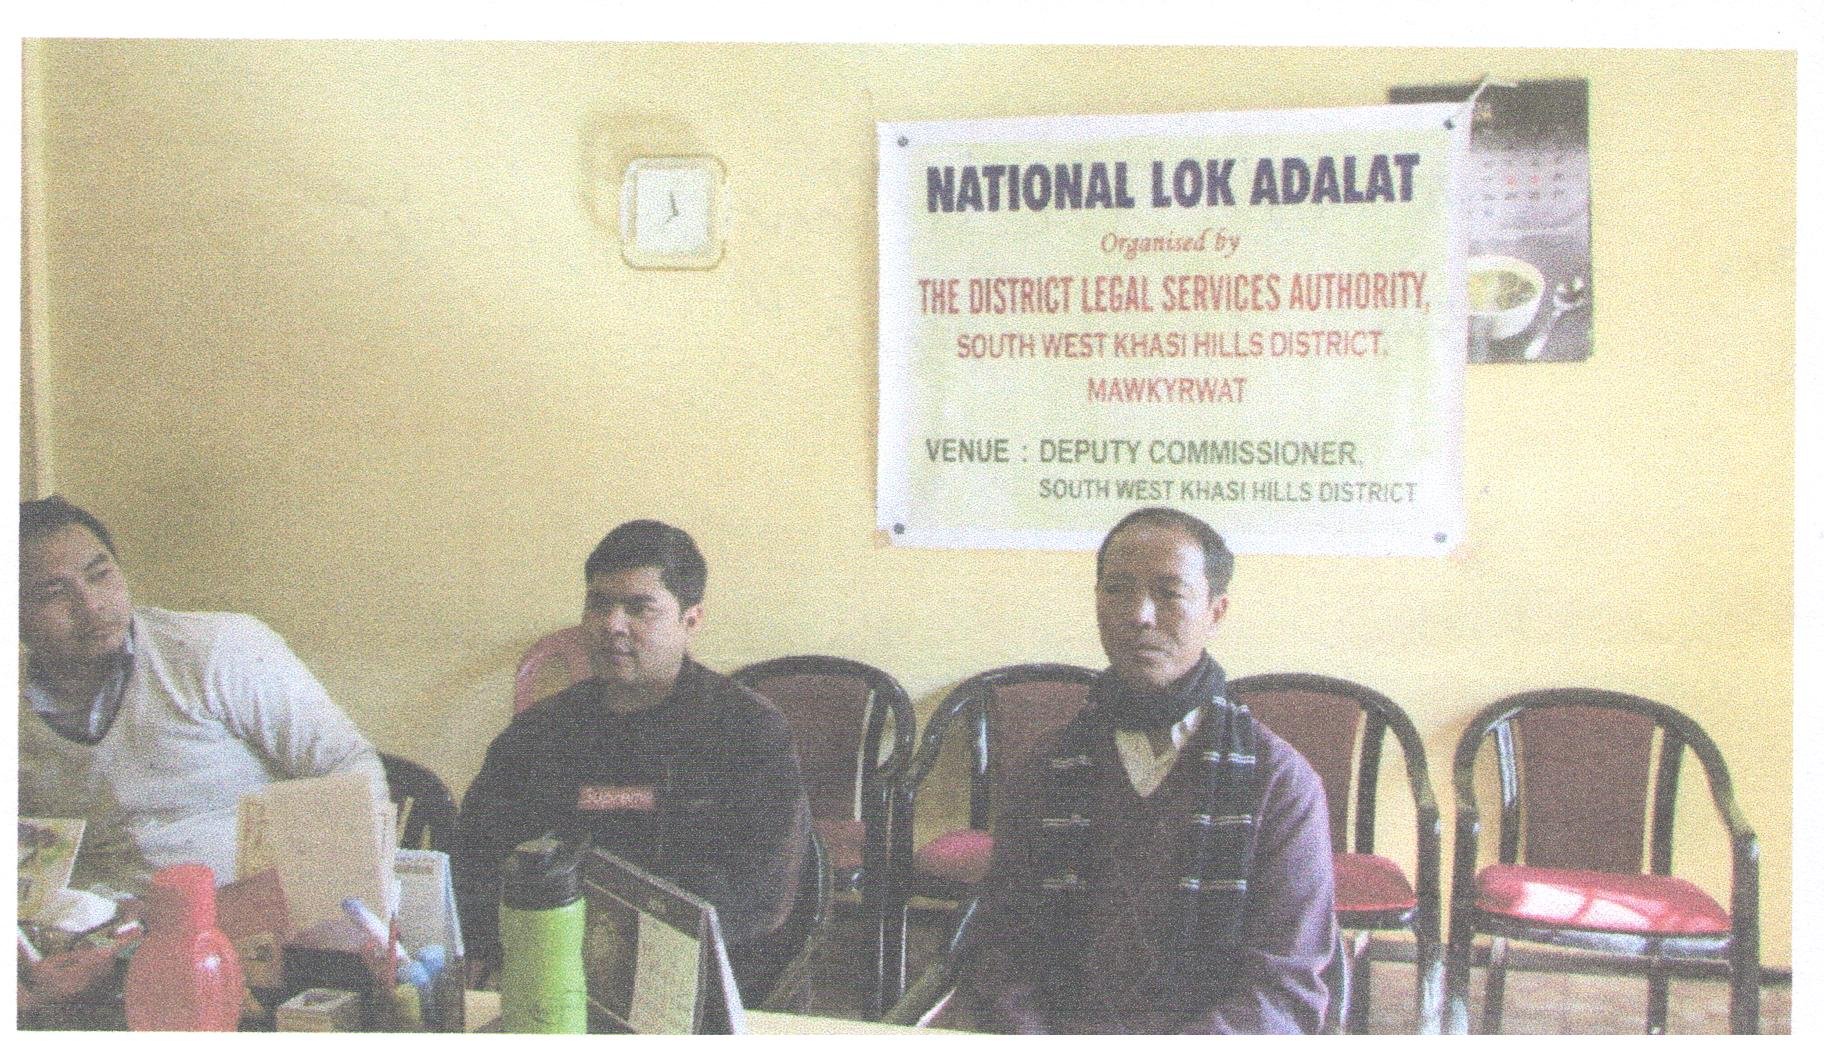 National Lok Adalat held at Deputy Commissioner Office Mawkyrwat on the 8-12-2018